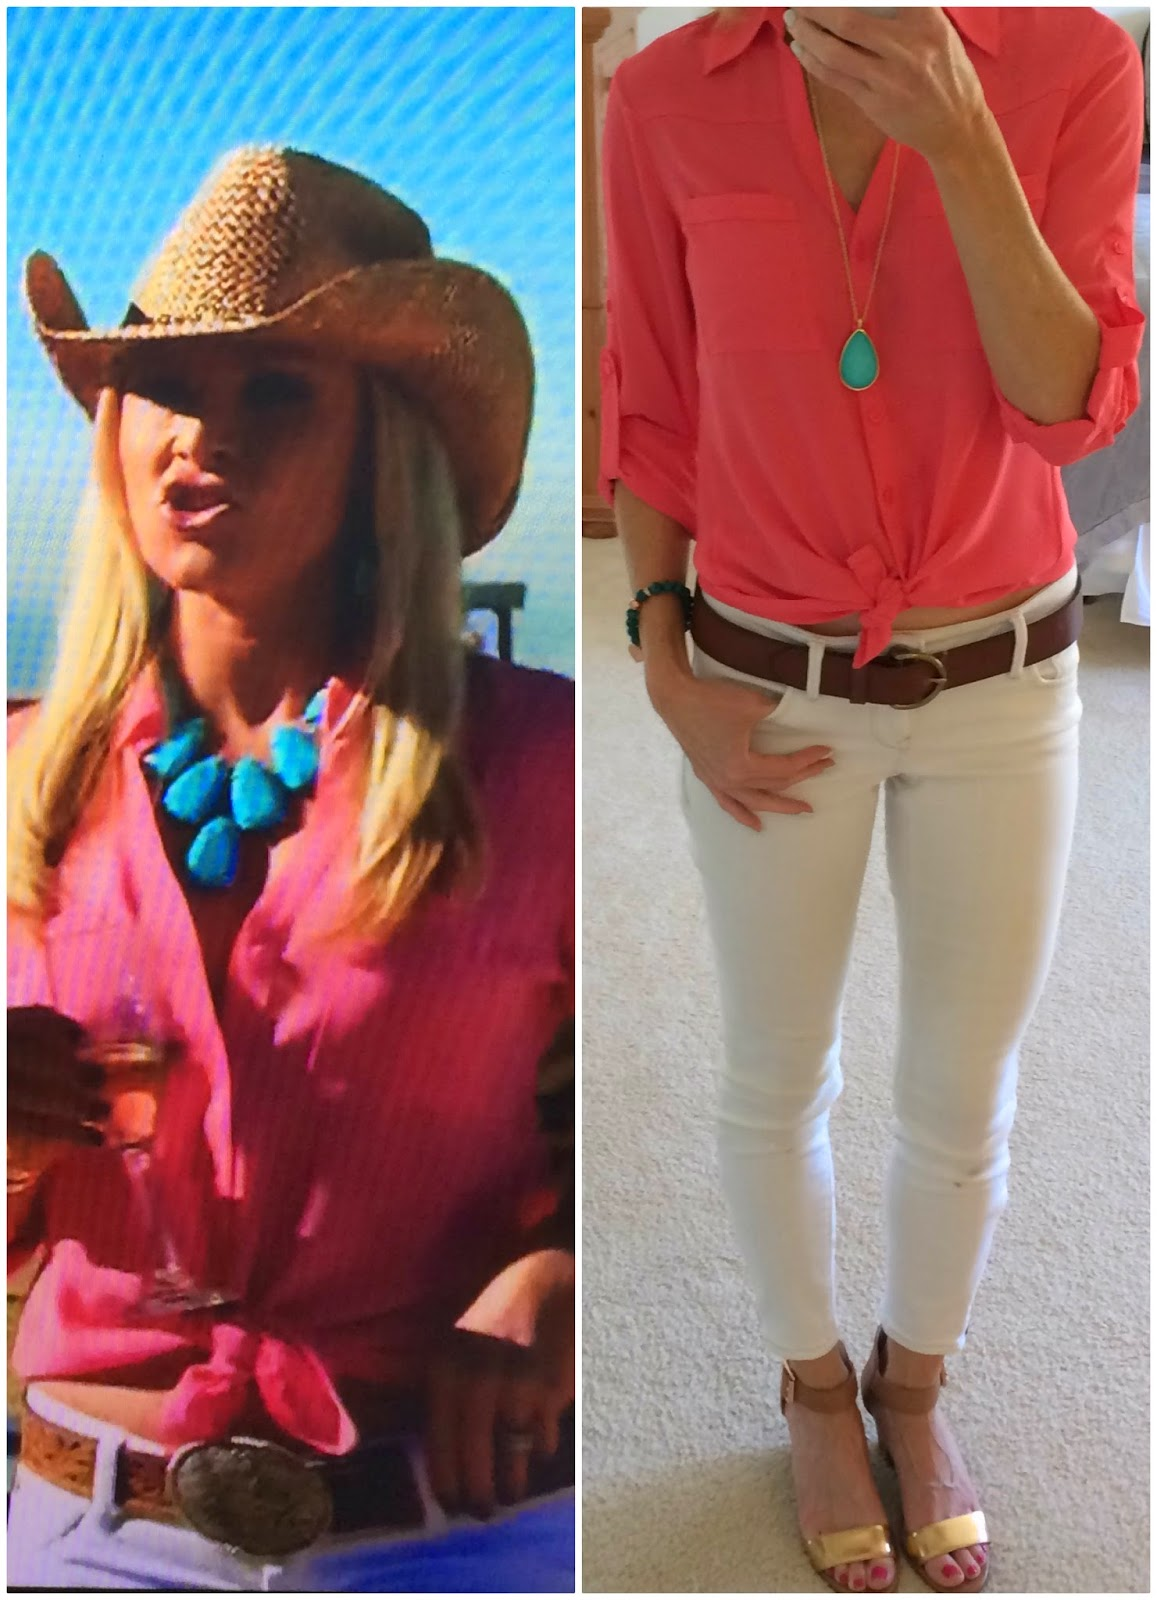 Tamra Barney Judge Blouse From Hoedown Episode